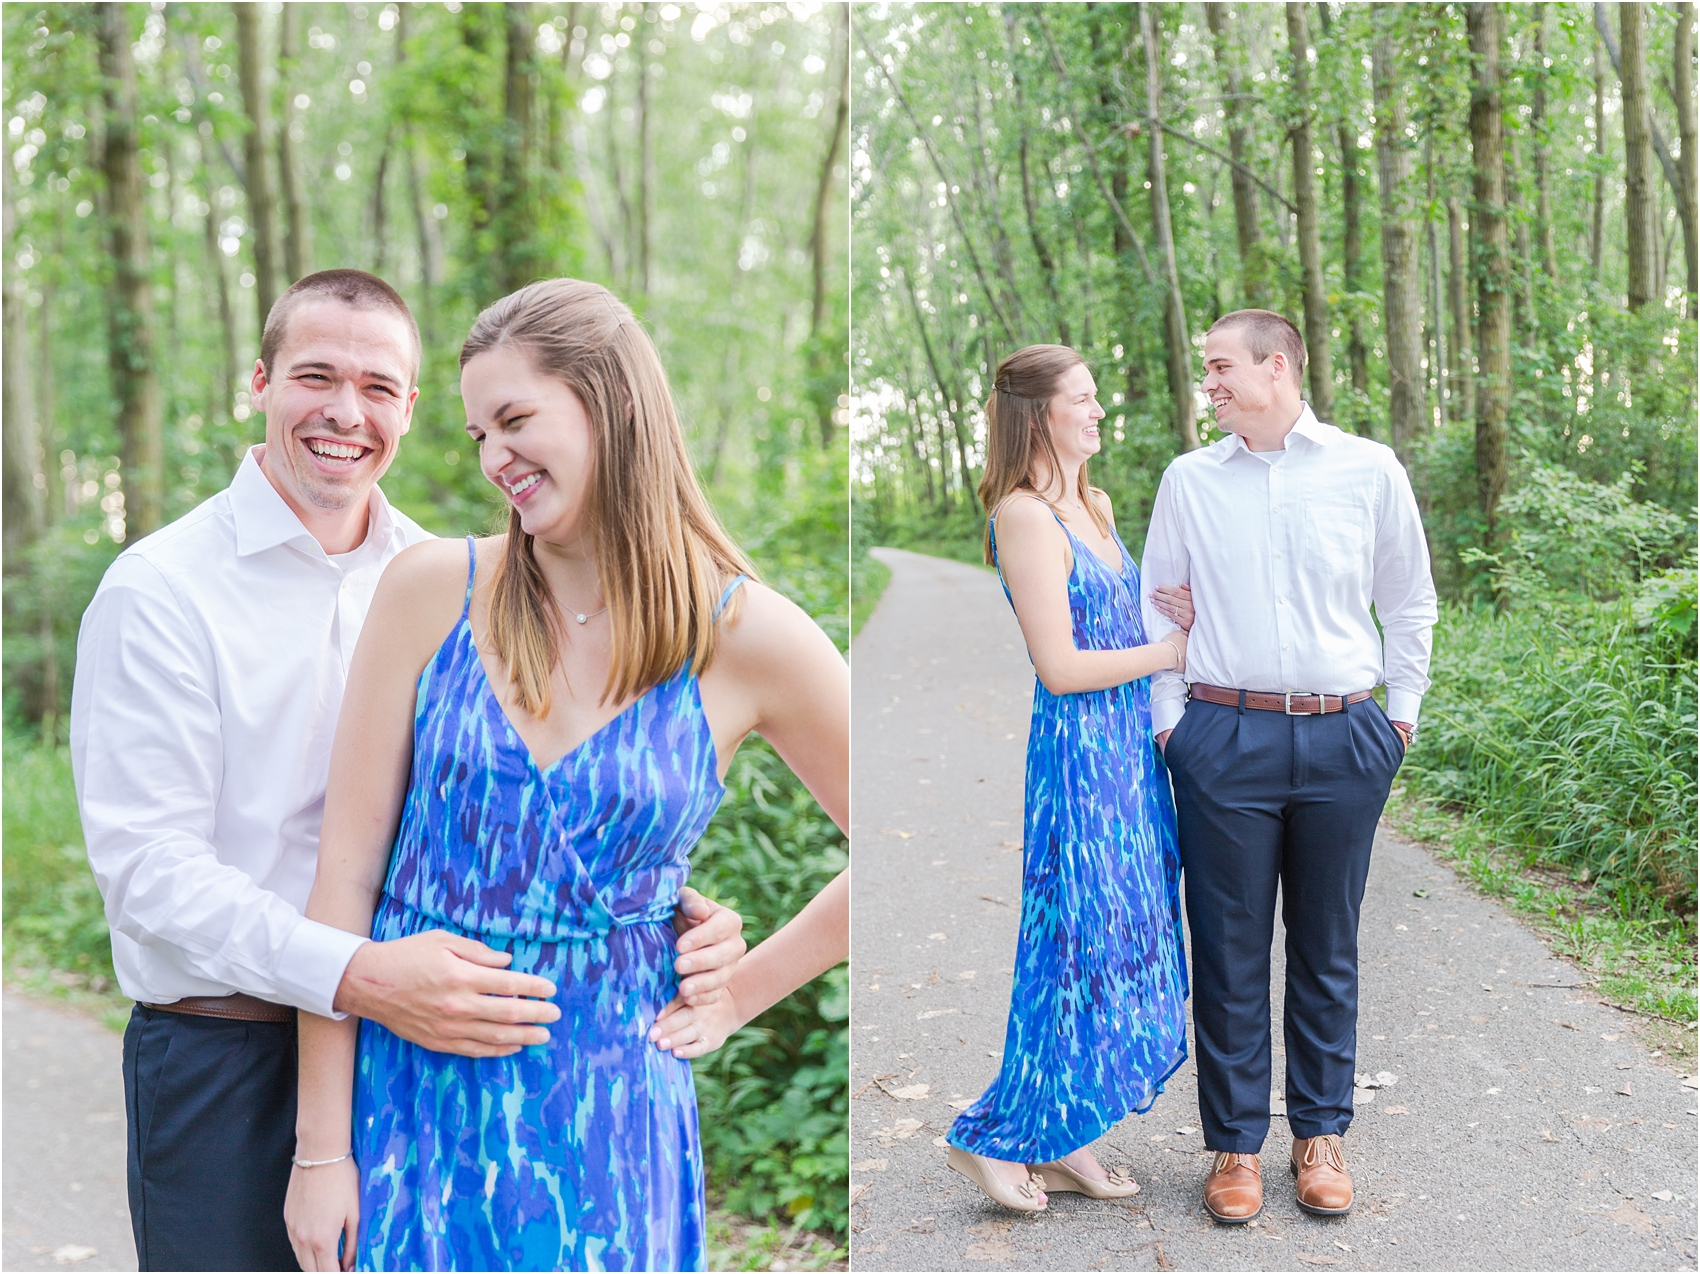 light-hearted-sunset-engagement-photos-at-the-beach-in-oregon-oh-by-courtney-carolyn-photography_0004.jpg